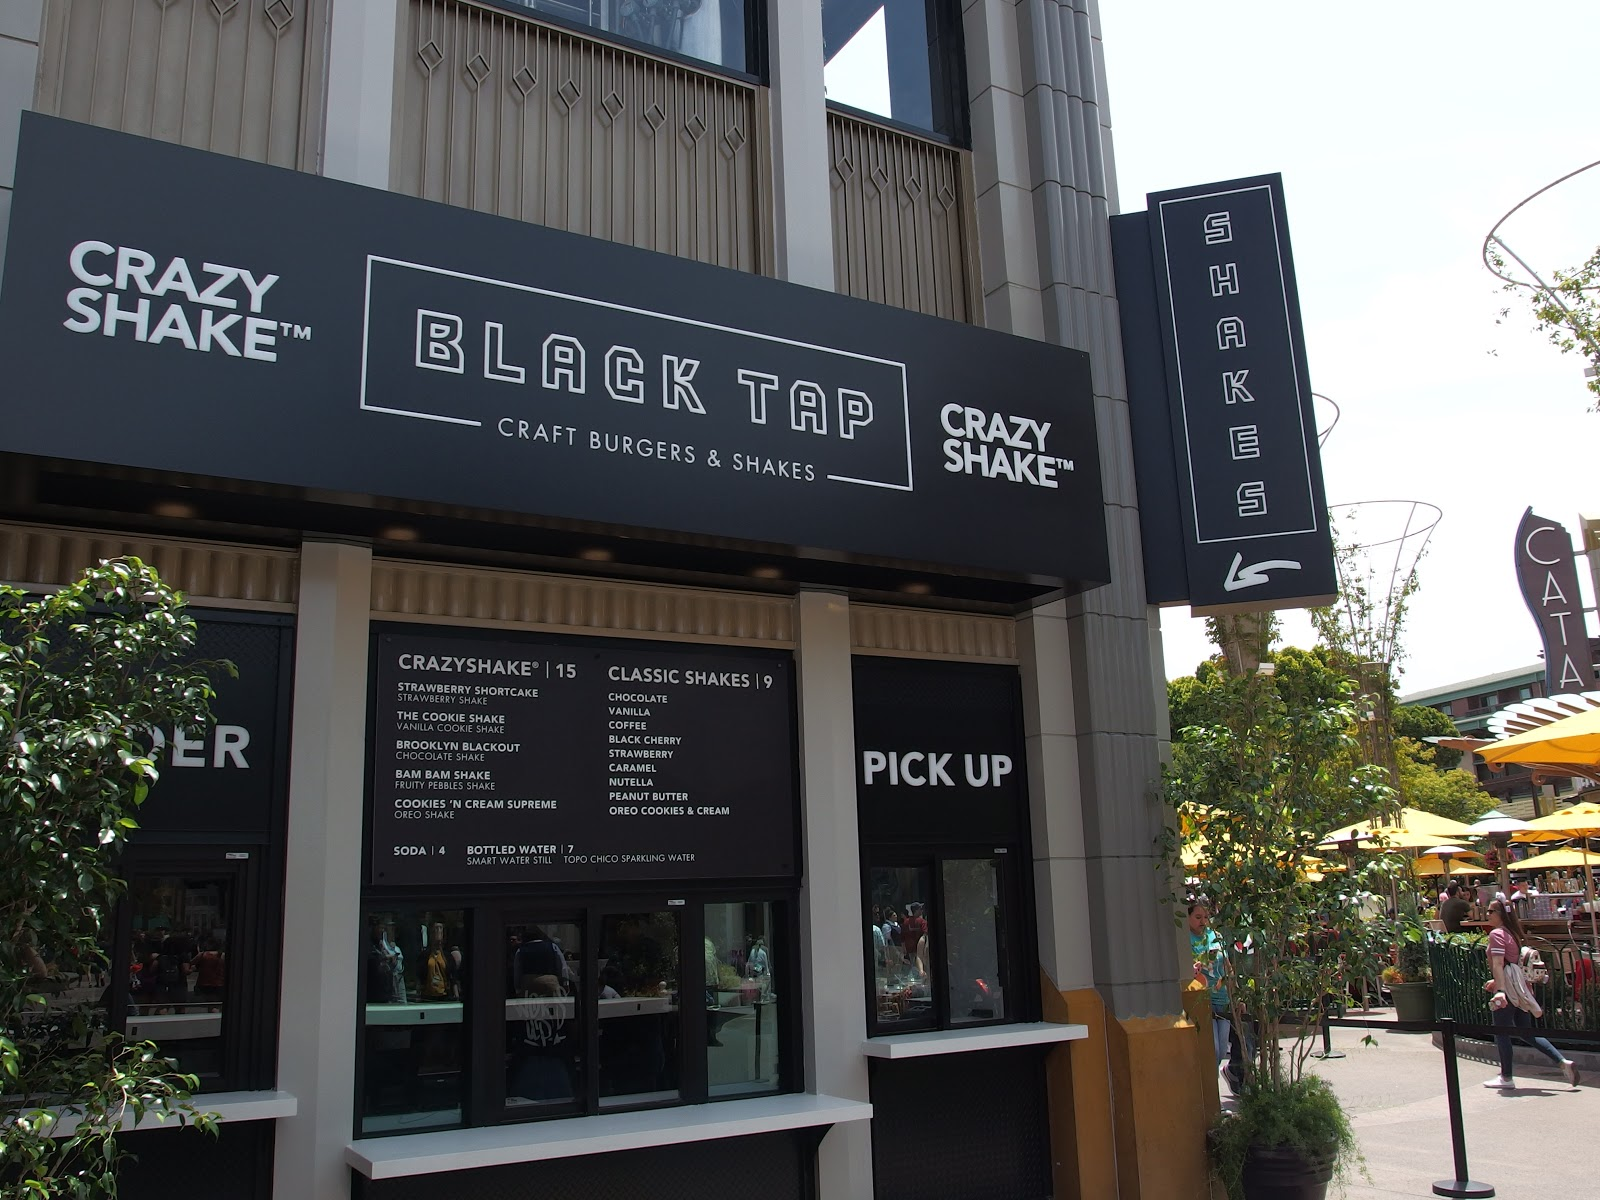 Black Tap Anaheim's walk-up counter for Crazy Shakes is exclusive to this location